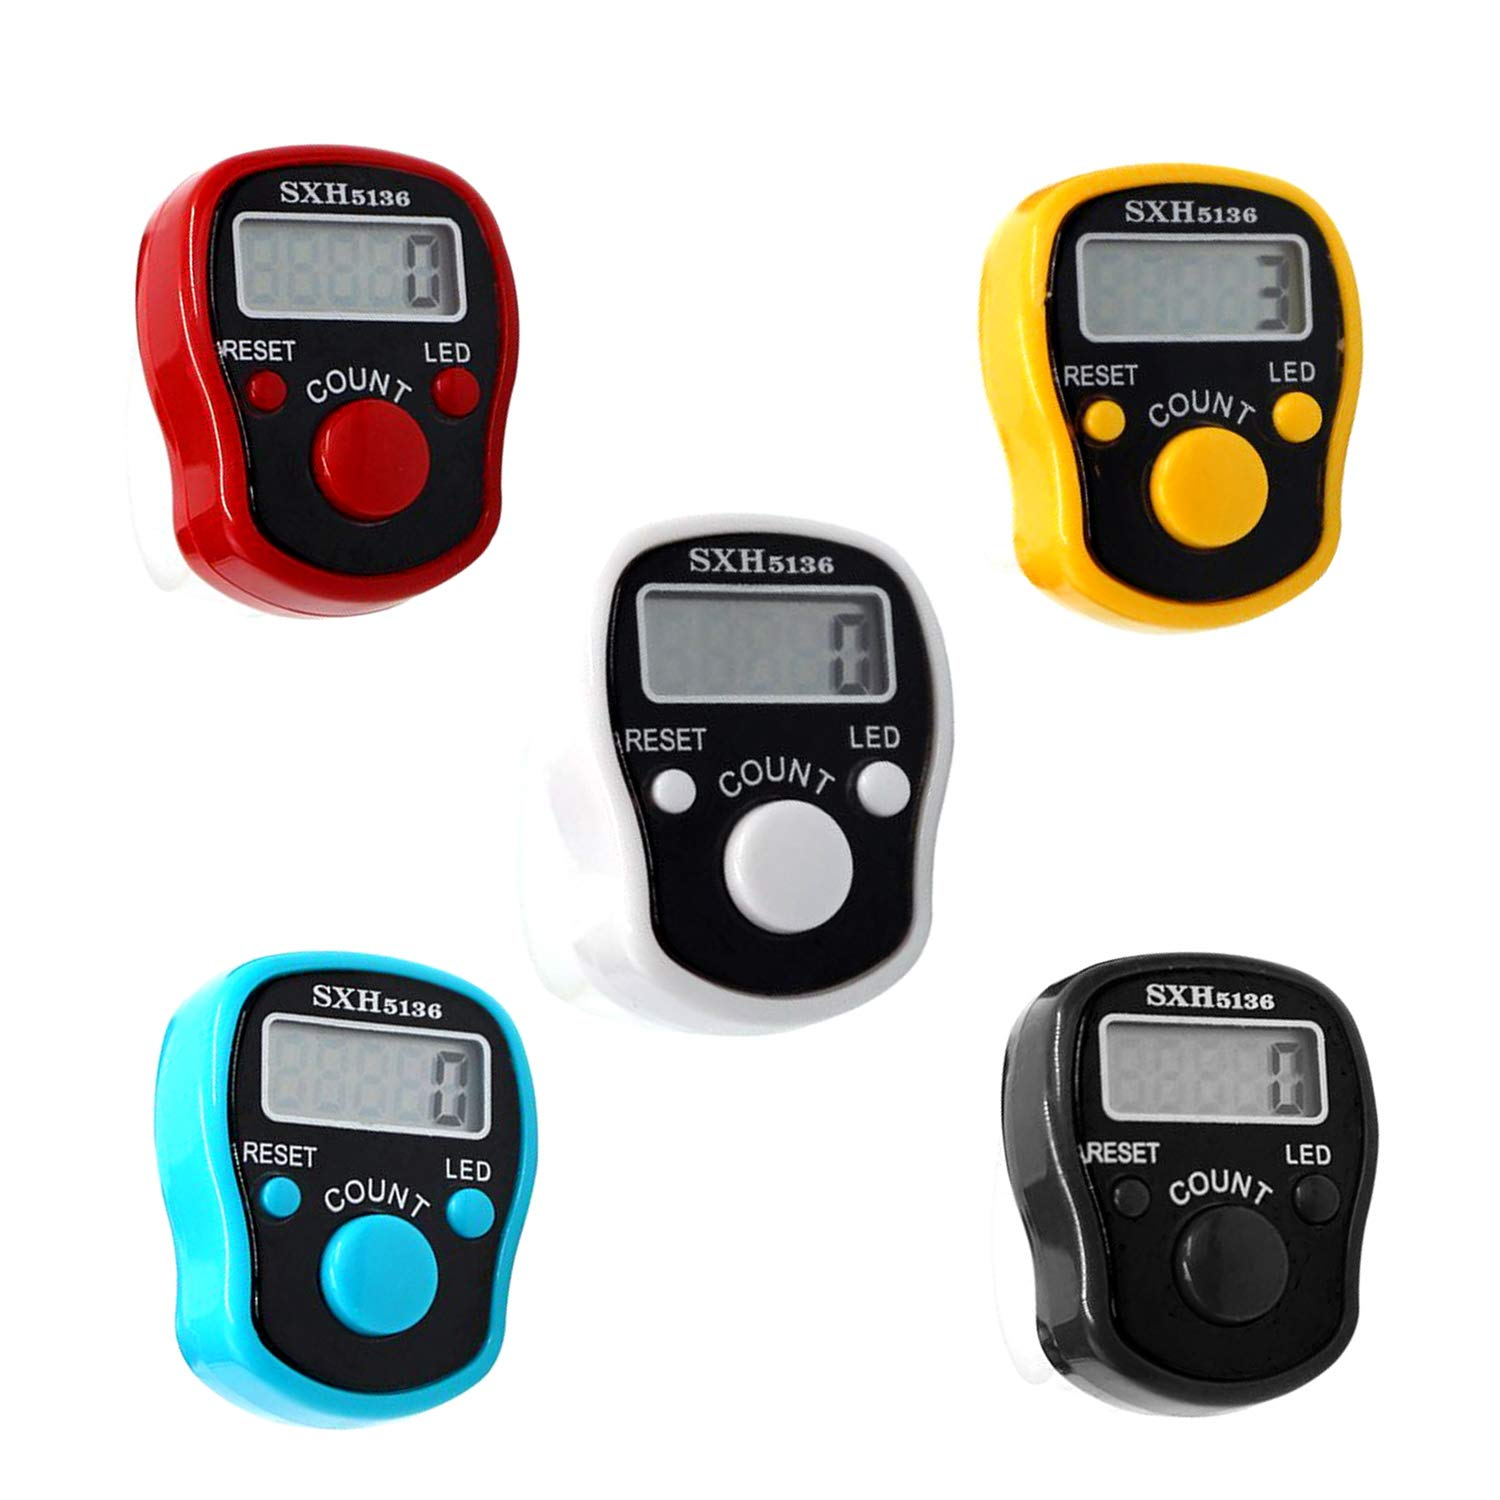 Portable Electronic Counter Meter LCD Screen Tally Counter Finger Ring Clicker